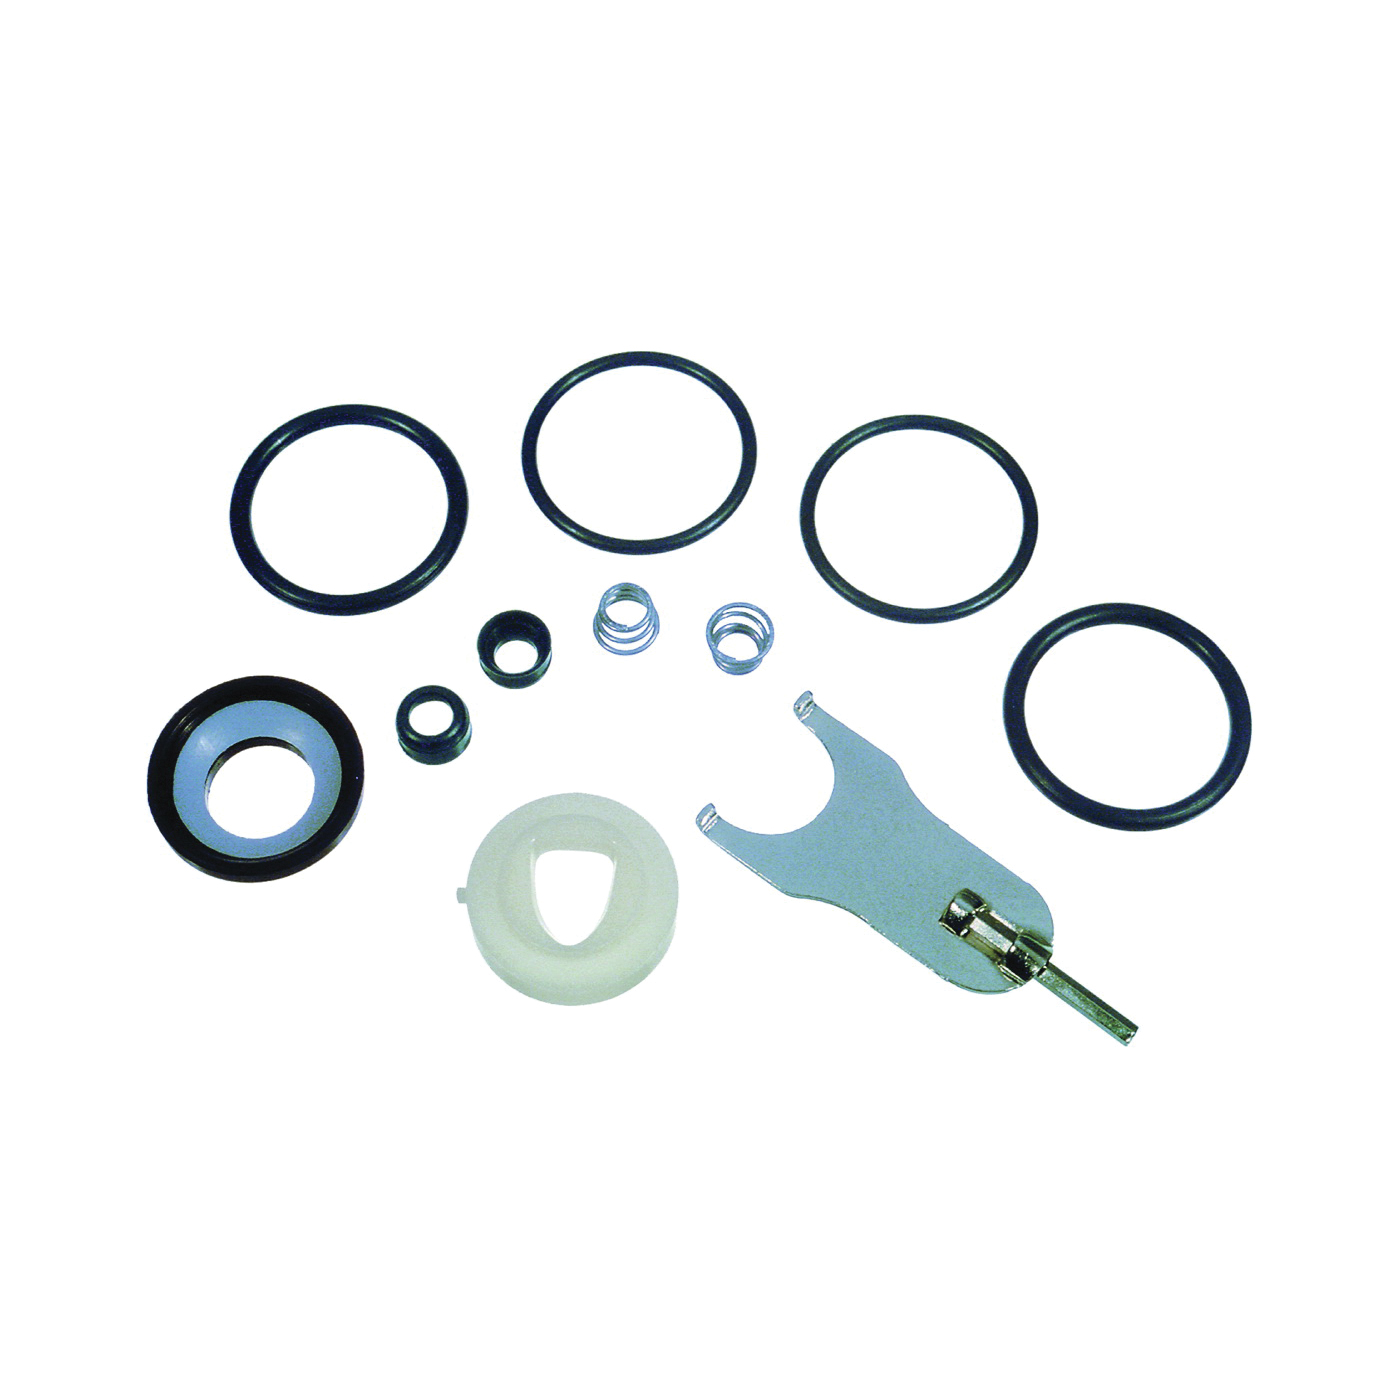 Picture of Danco DL-3 Series 80701 Cartridge Repair Kit, Stainless Steel, For: Delta Faucets with #70 Ball